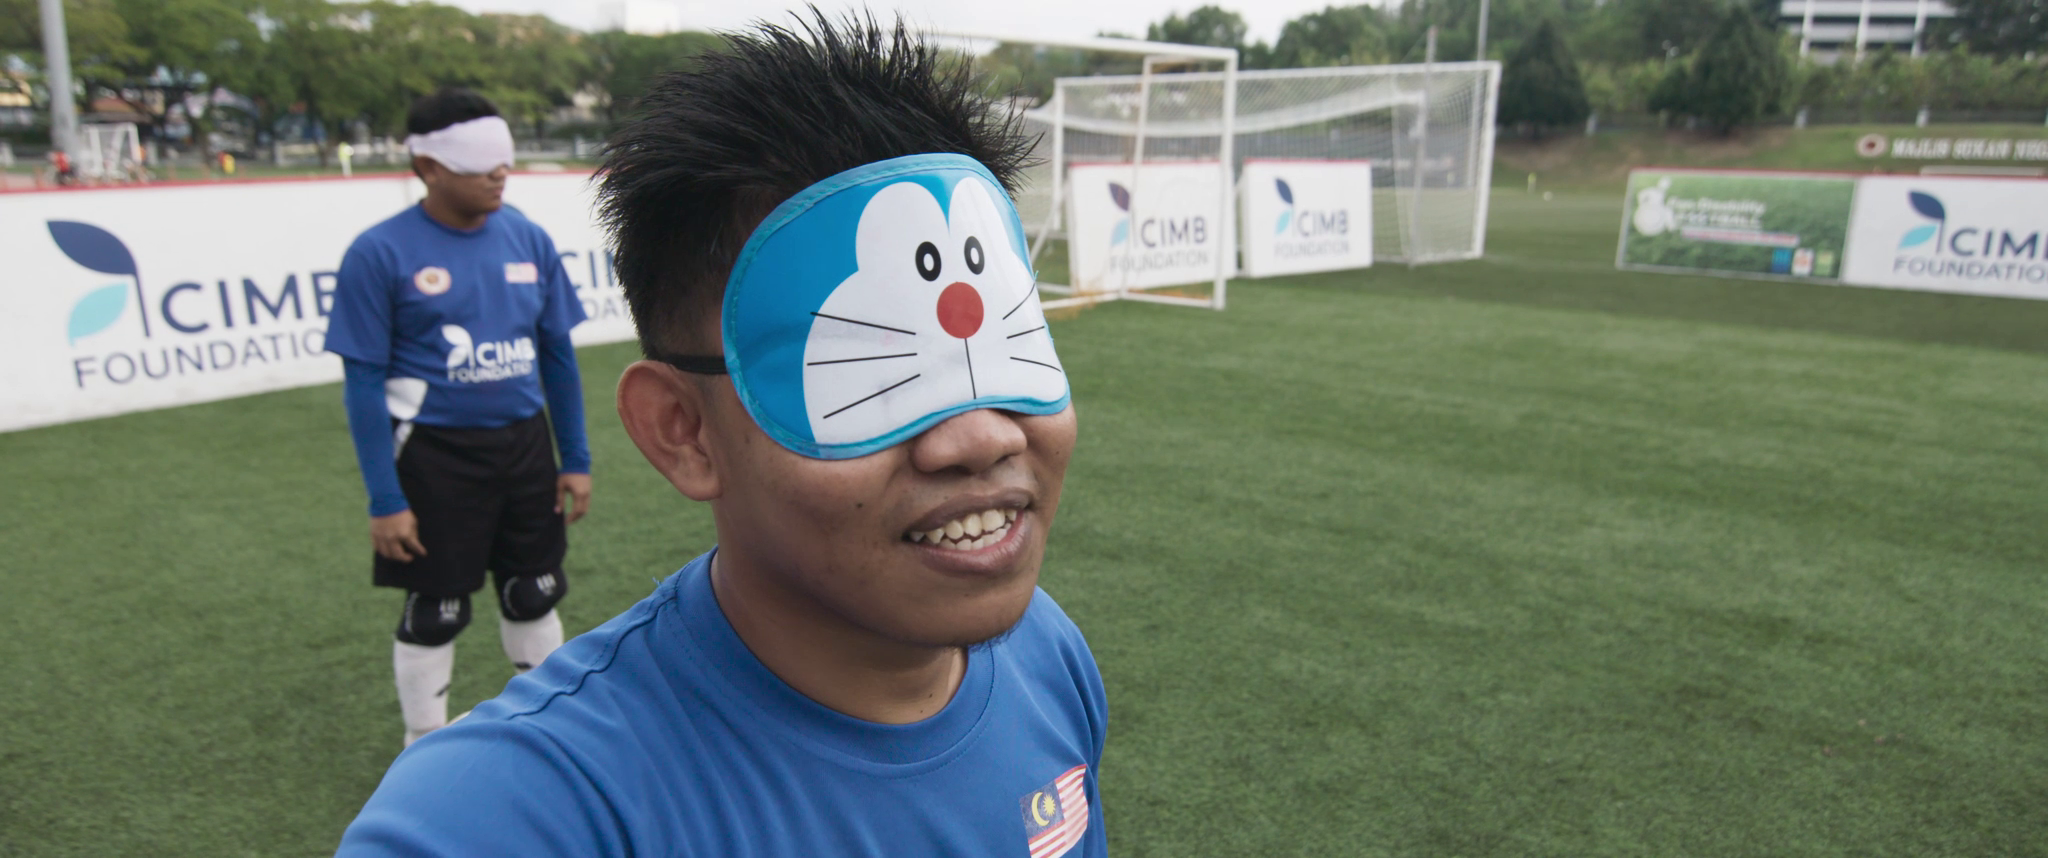 Footballer Kenchot is wearing a cartoon eye mask of a cat's face.